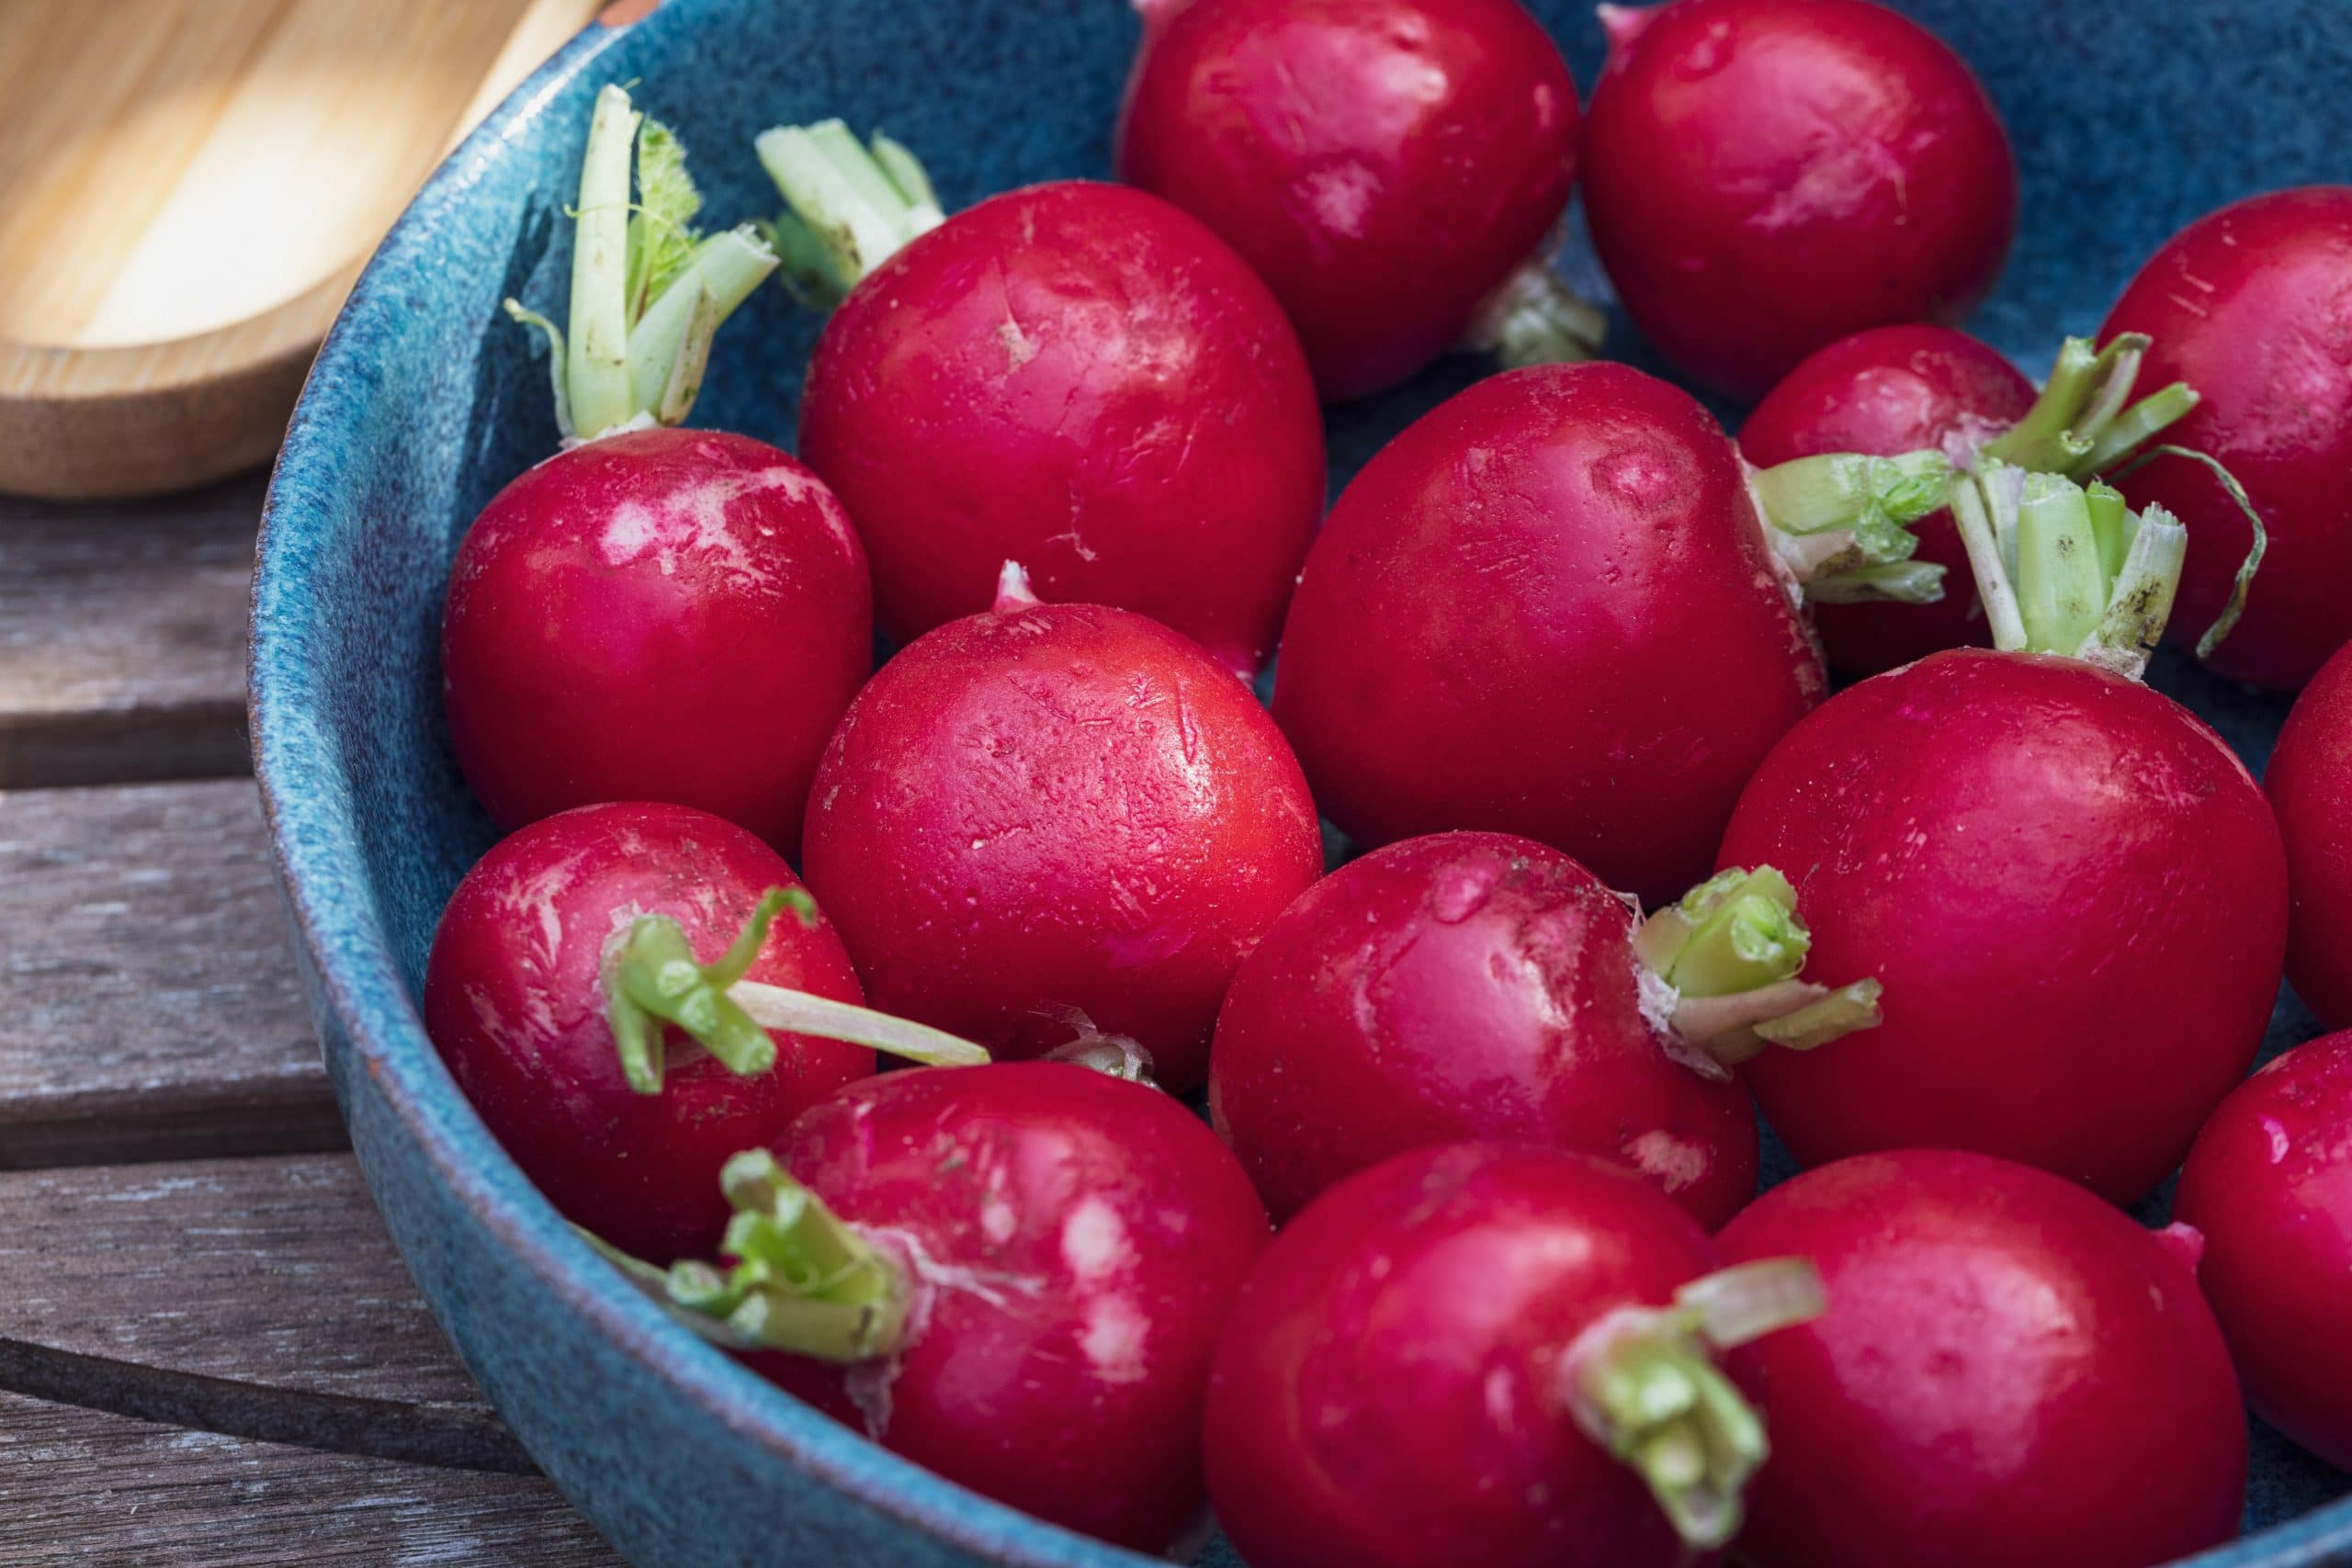 How to store fresh radishes from the garden